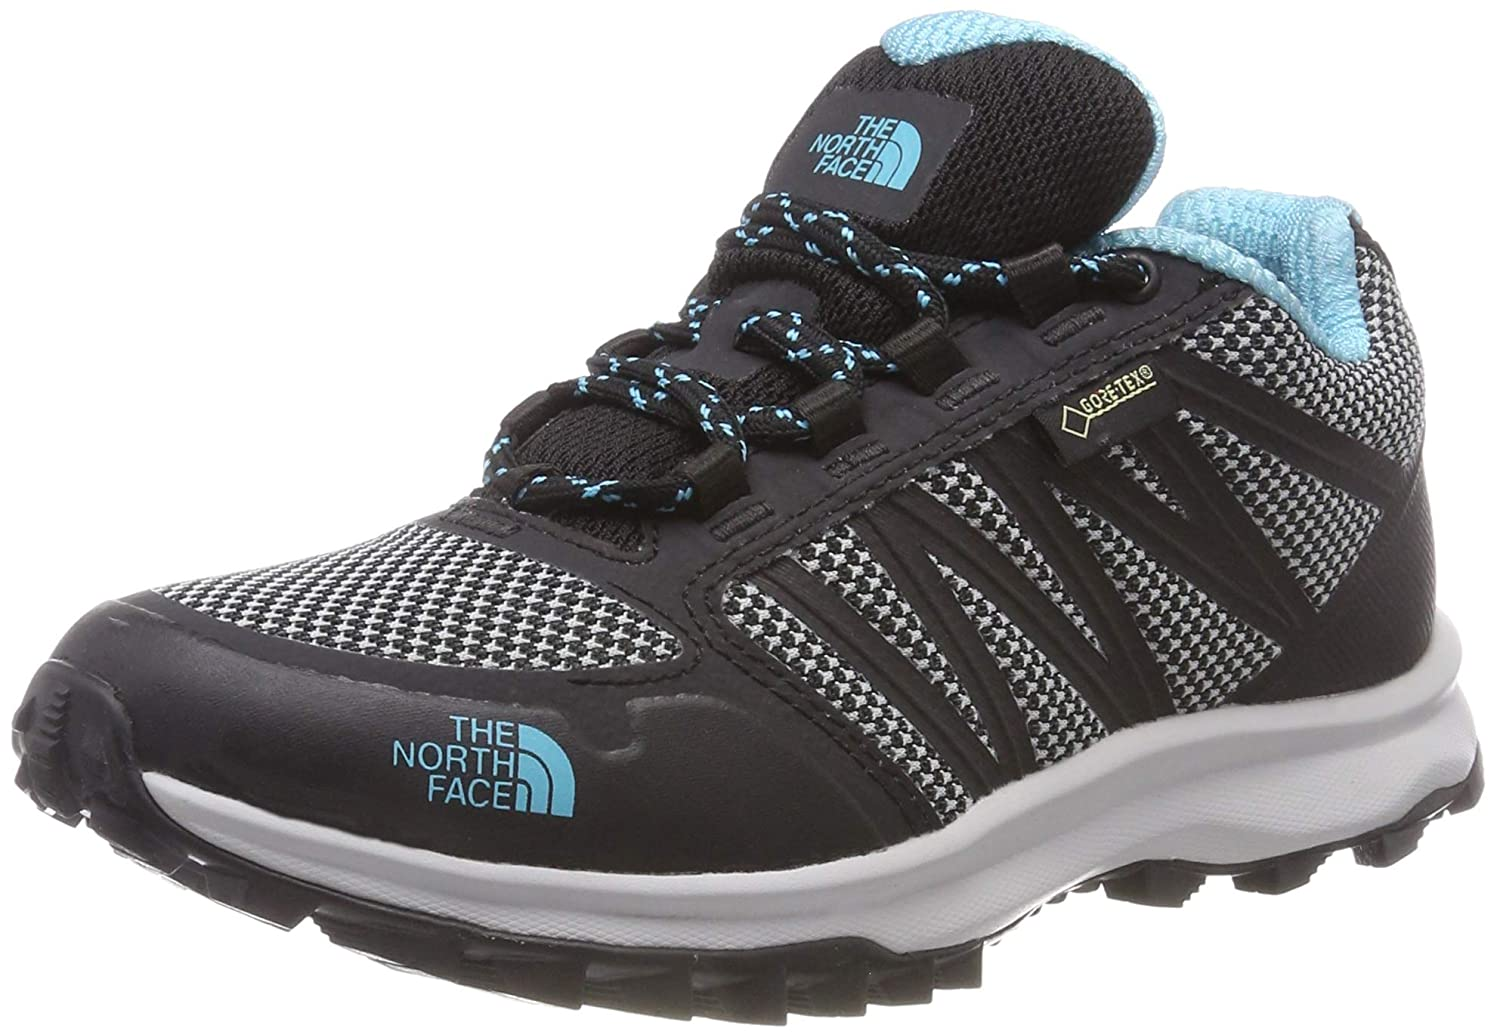 TALLA 41 EU. The North Face Litewave Fastpack Gore-Tex, Zapatillas de Senderismo para Mujer